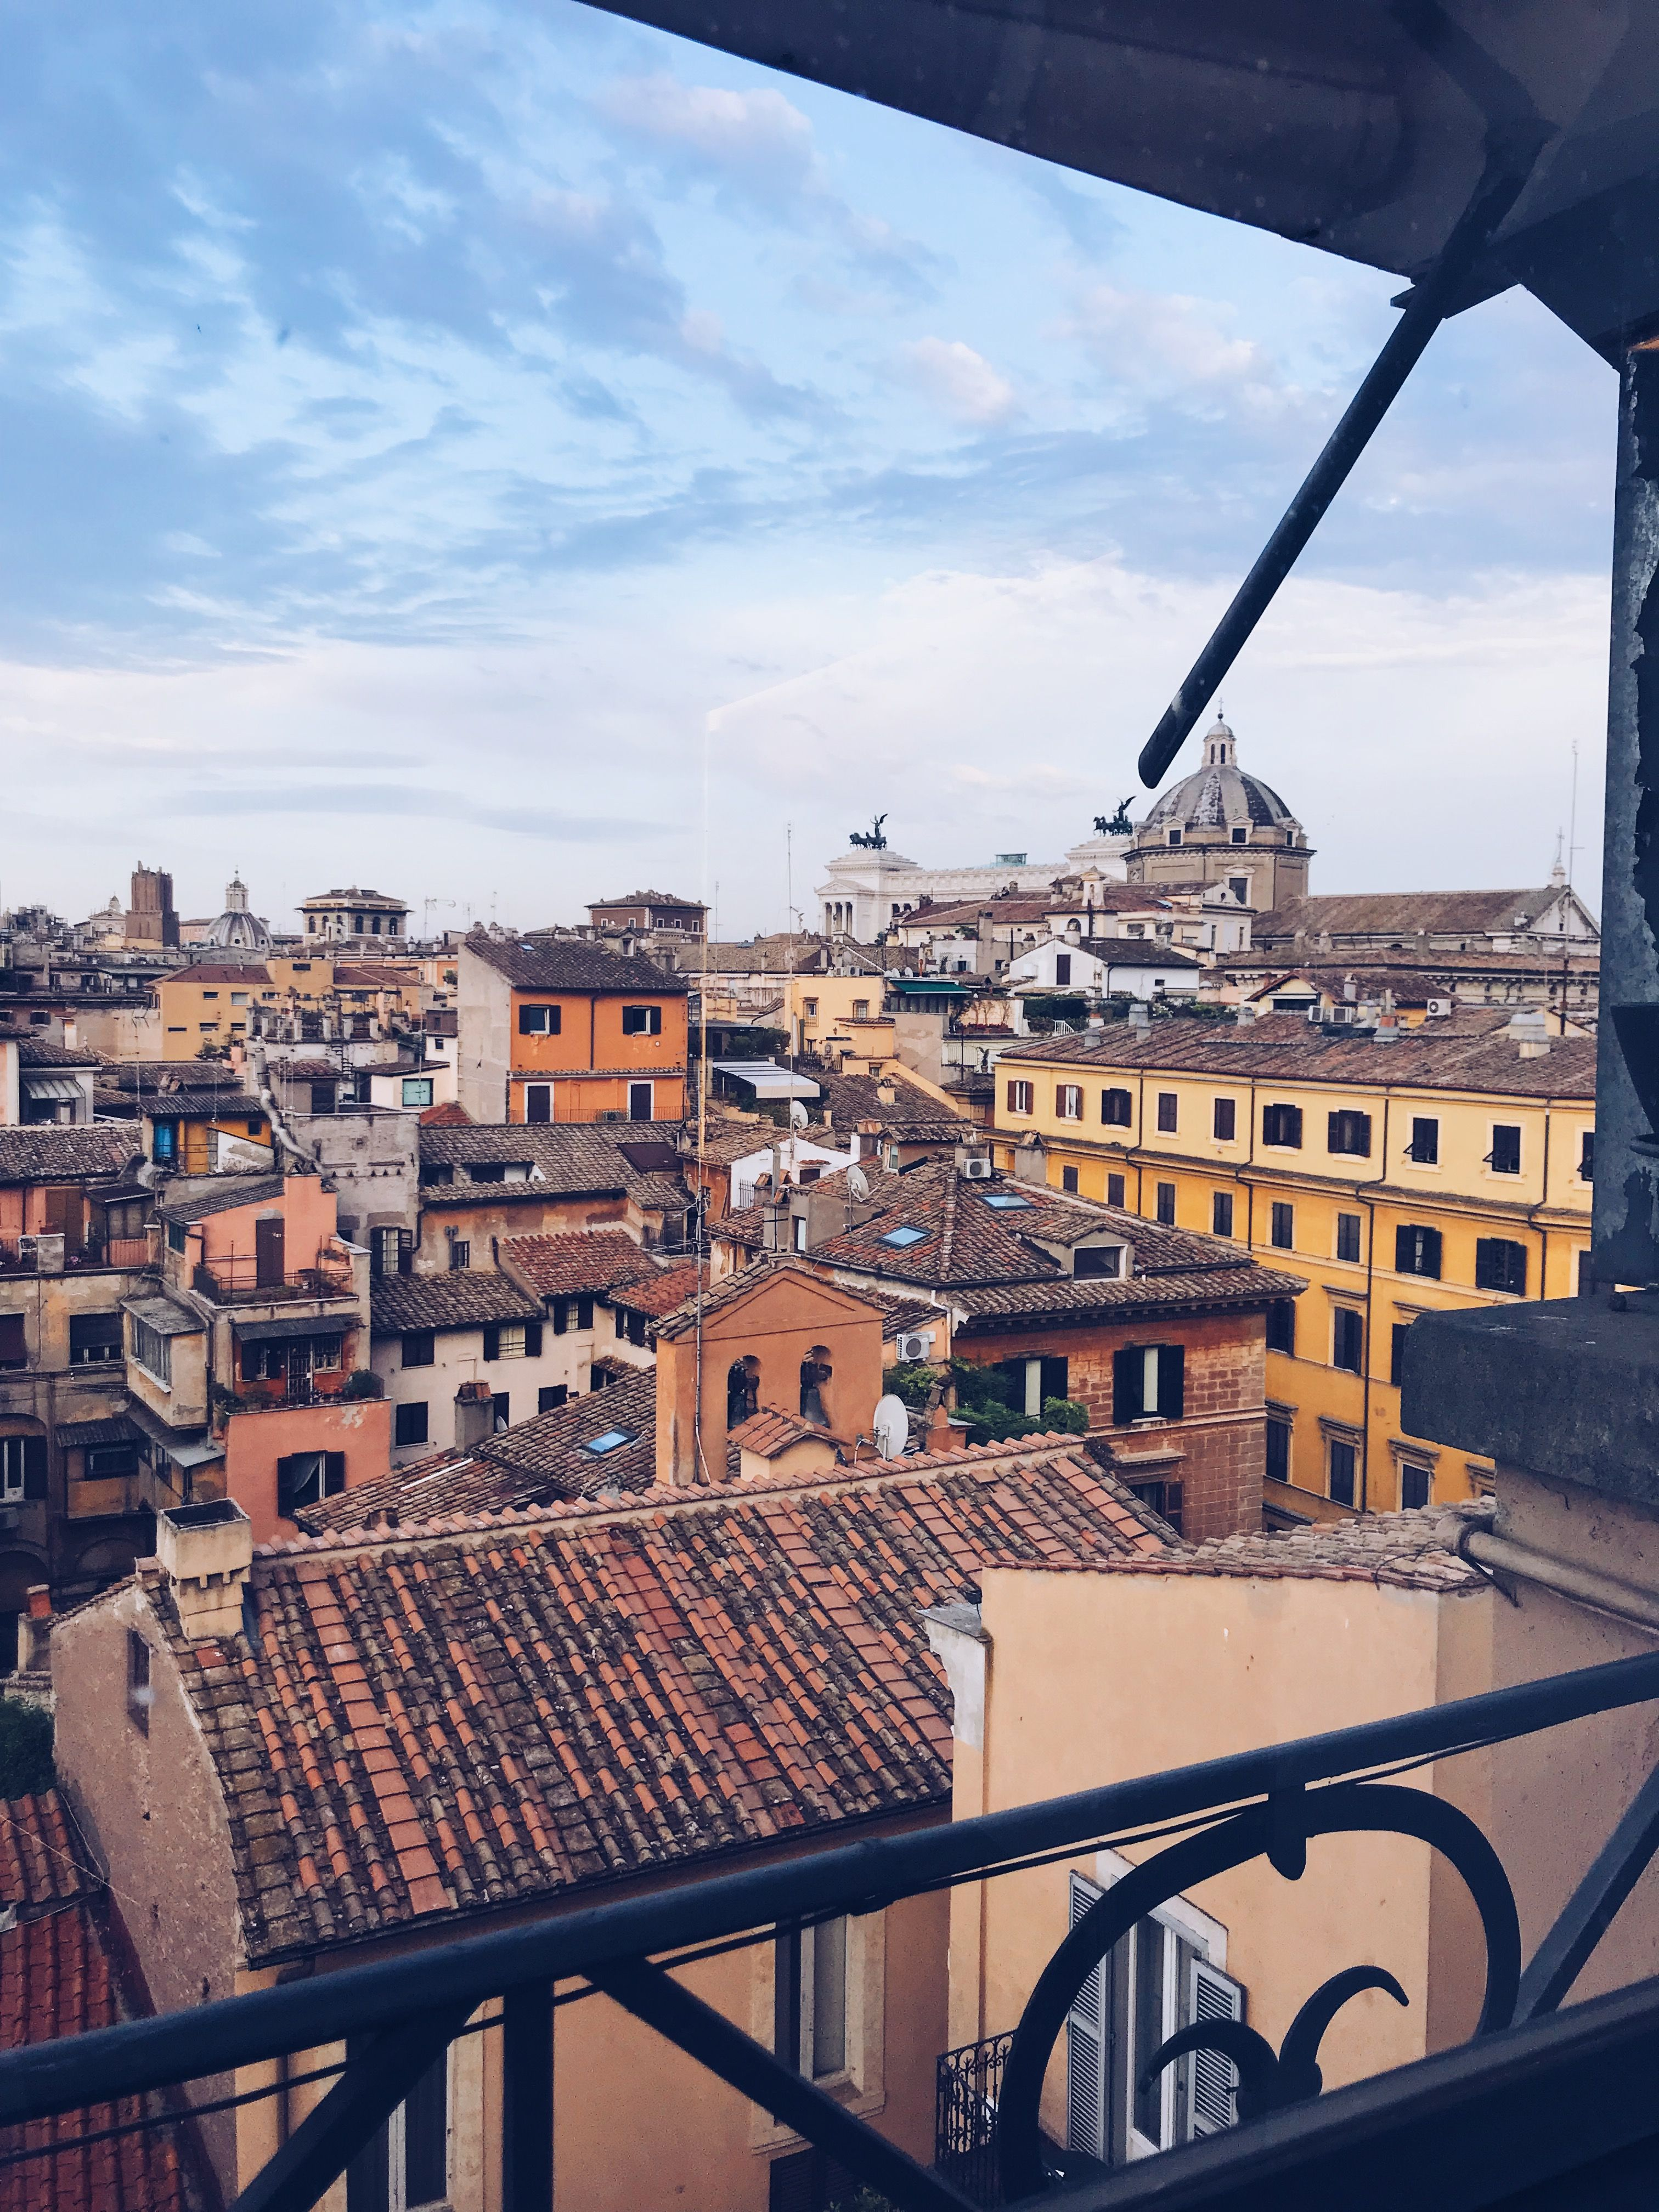 Can You Spot The Huge Monument Visible From The Rooftop Terrace In The Center City Of Rome You Can See So Much Of The Cit Italy Tours Visit Italy Italy Travel